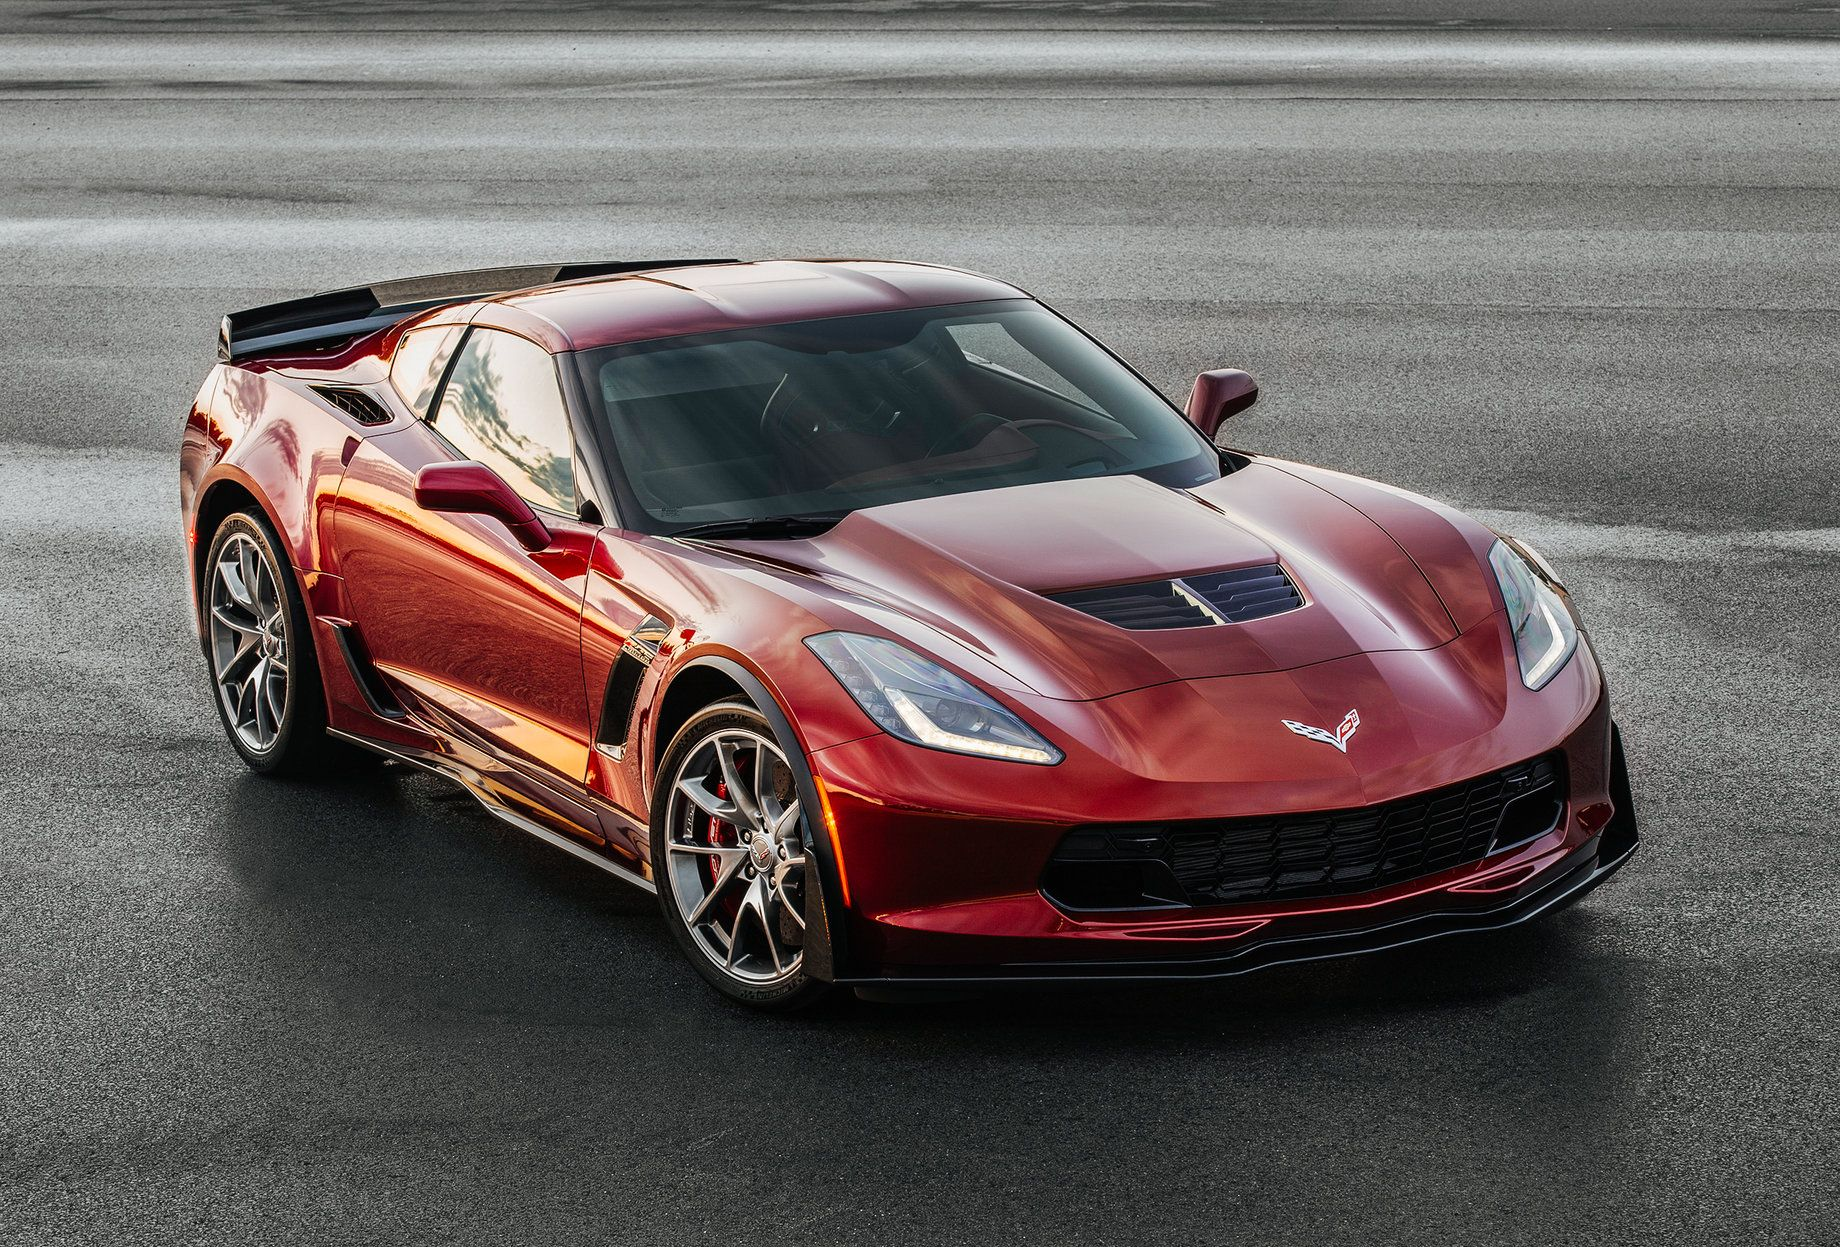 The Definitive List of Every Available Car in the US With